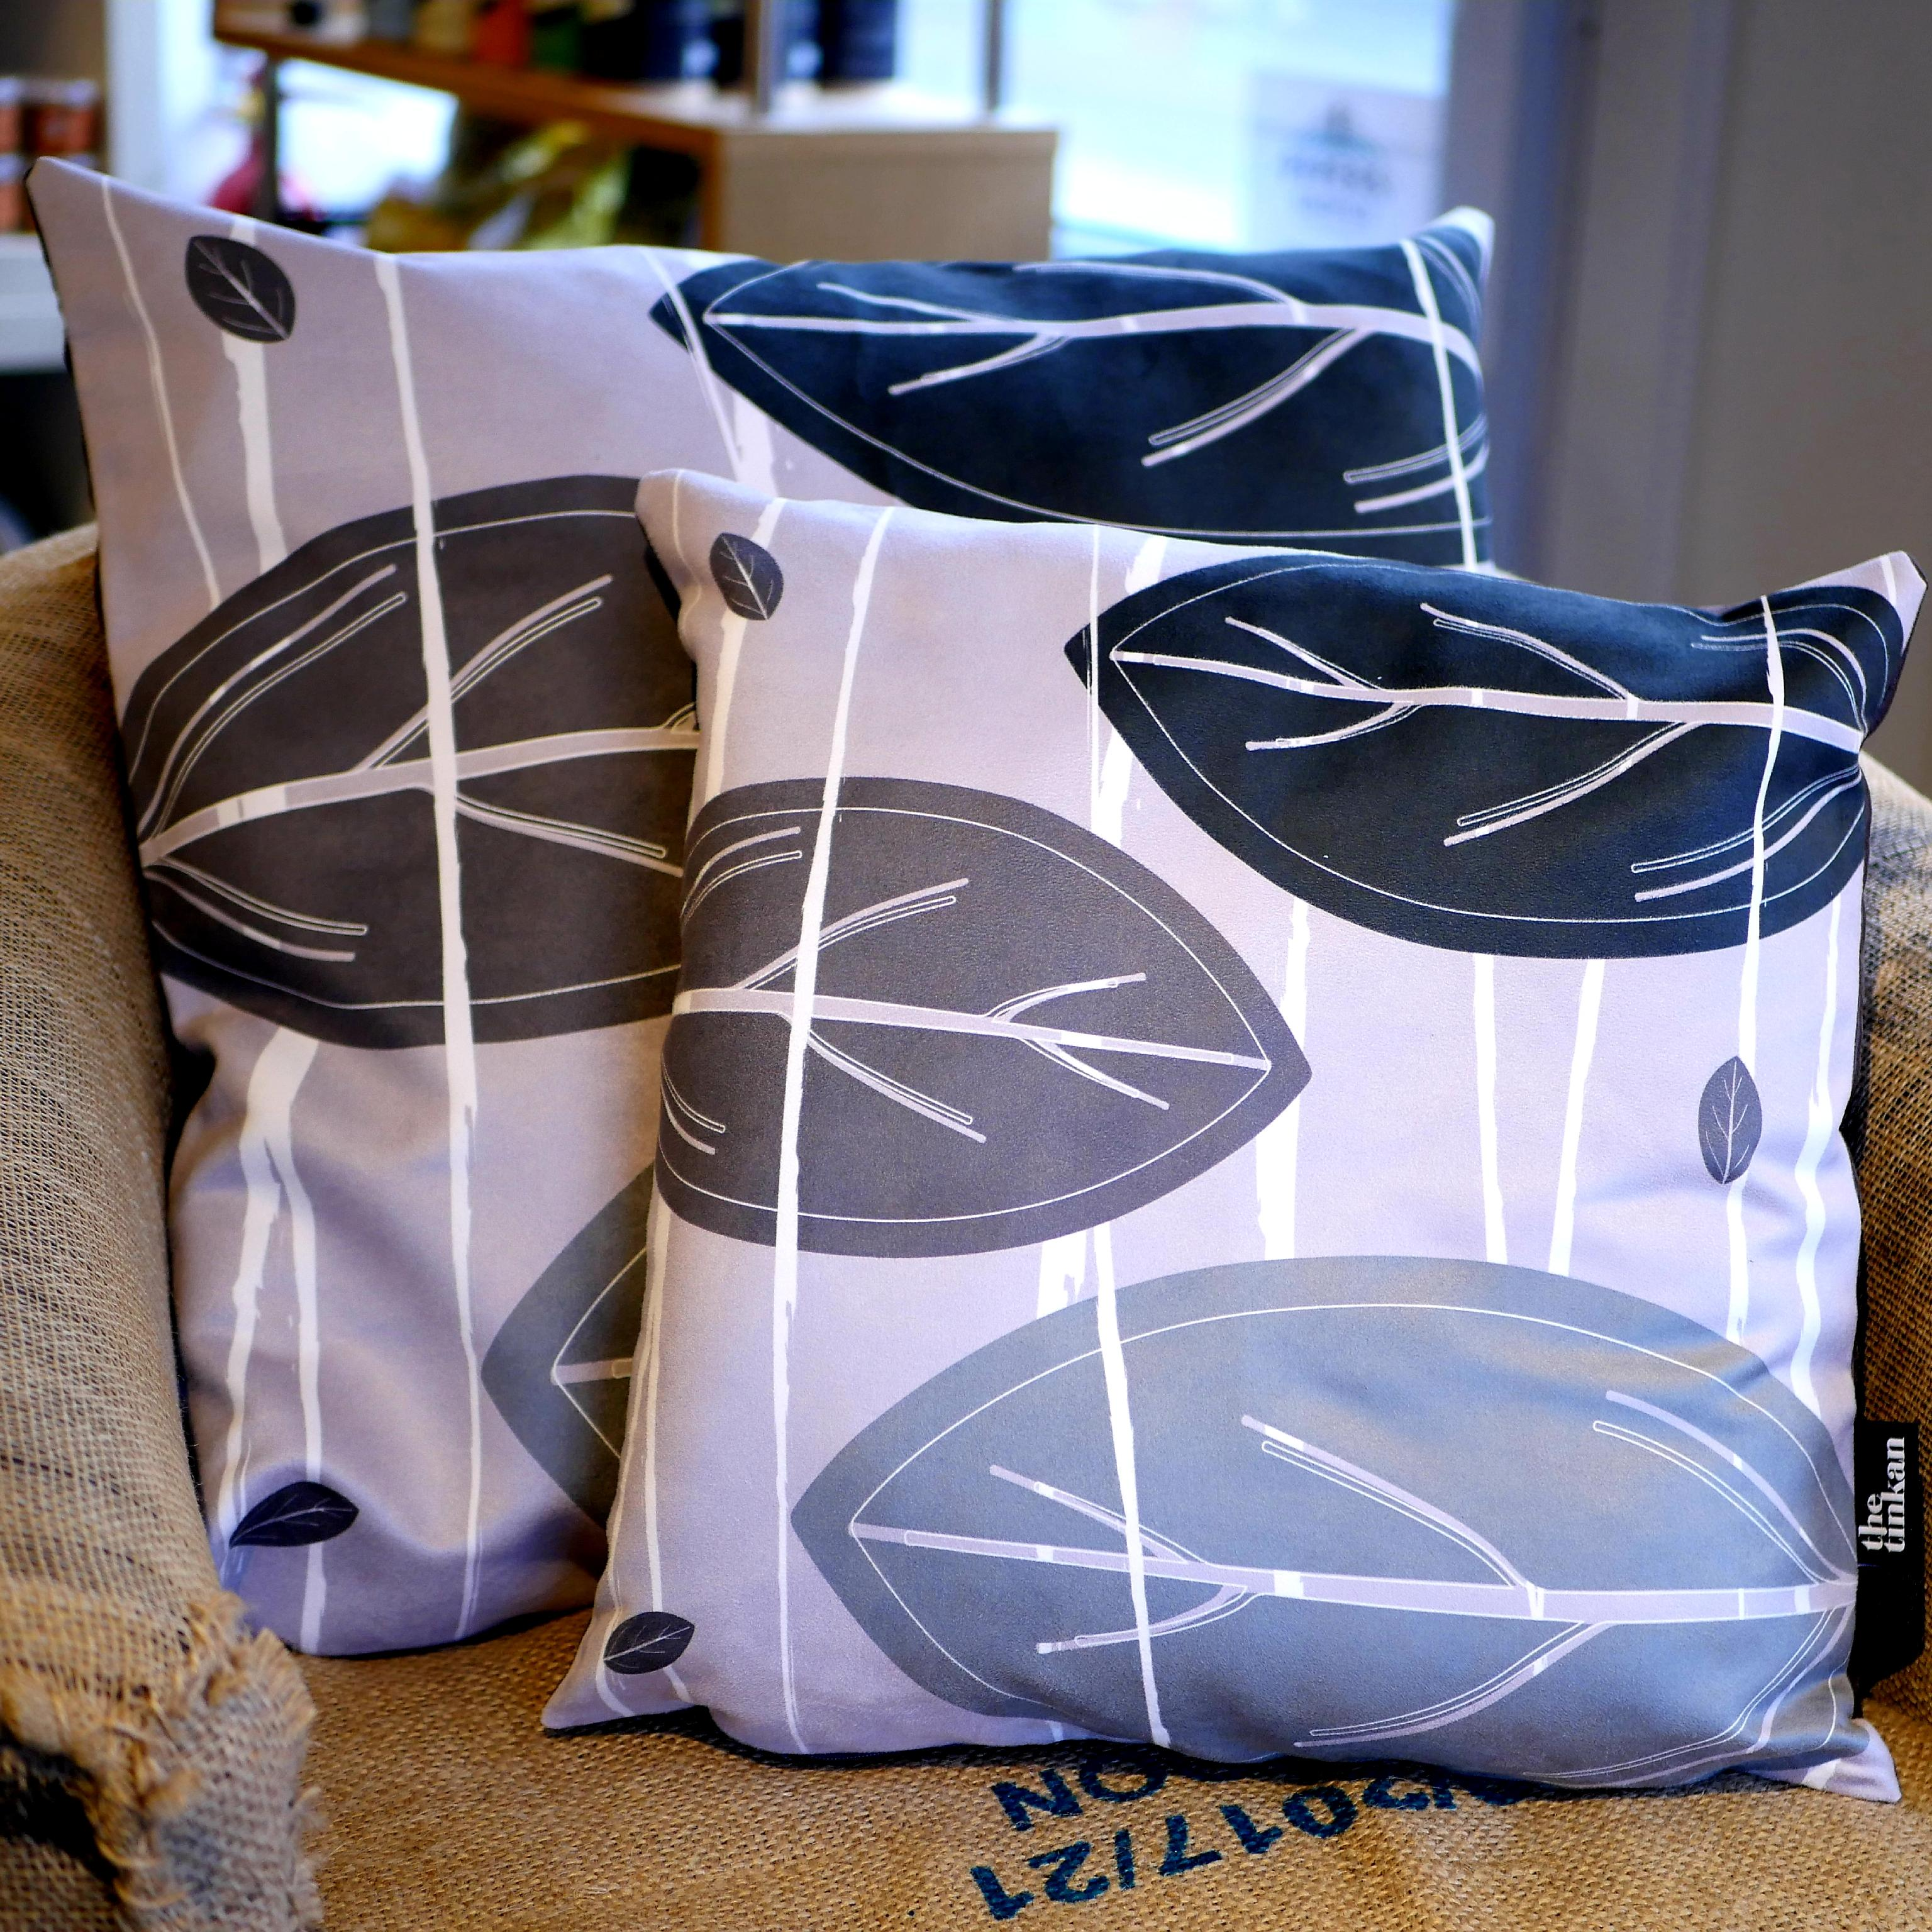 Black, charcoal grey & light grey faux suede soft feel Abstract Leaves Cushions, 43cm & 57cm square, with luxury inner pads designed by thetinkan. VIEW PRODUCT >>